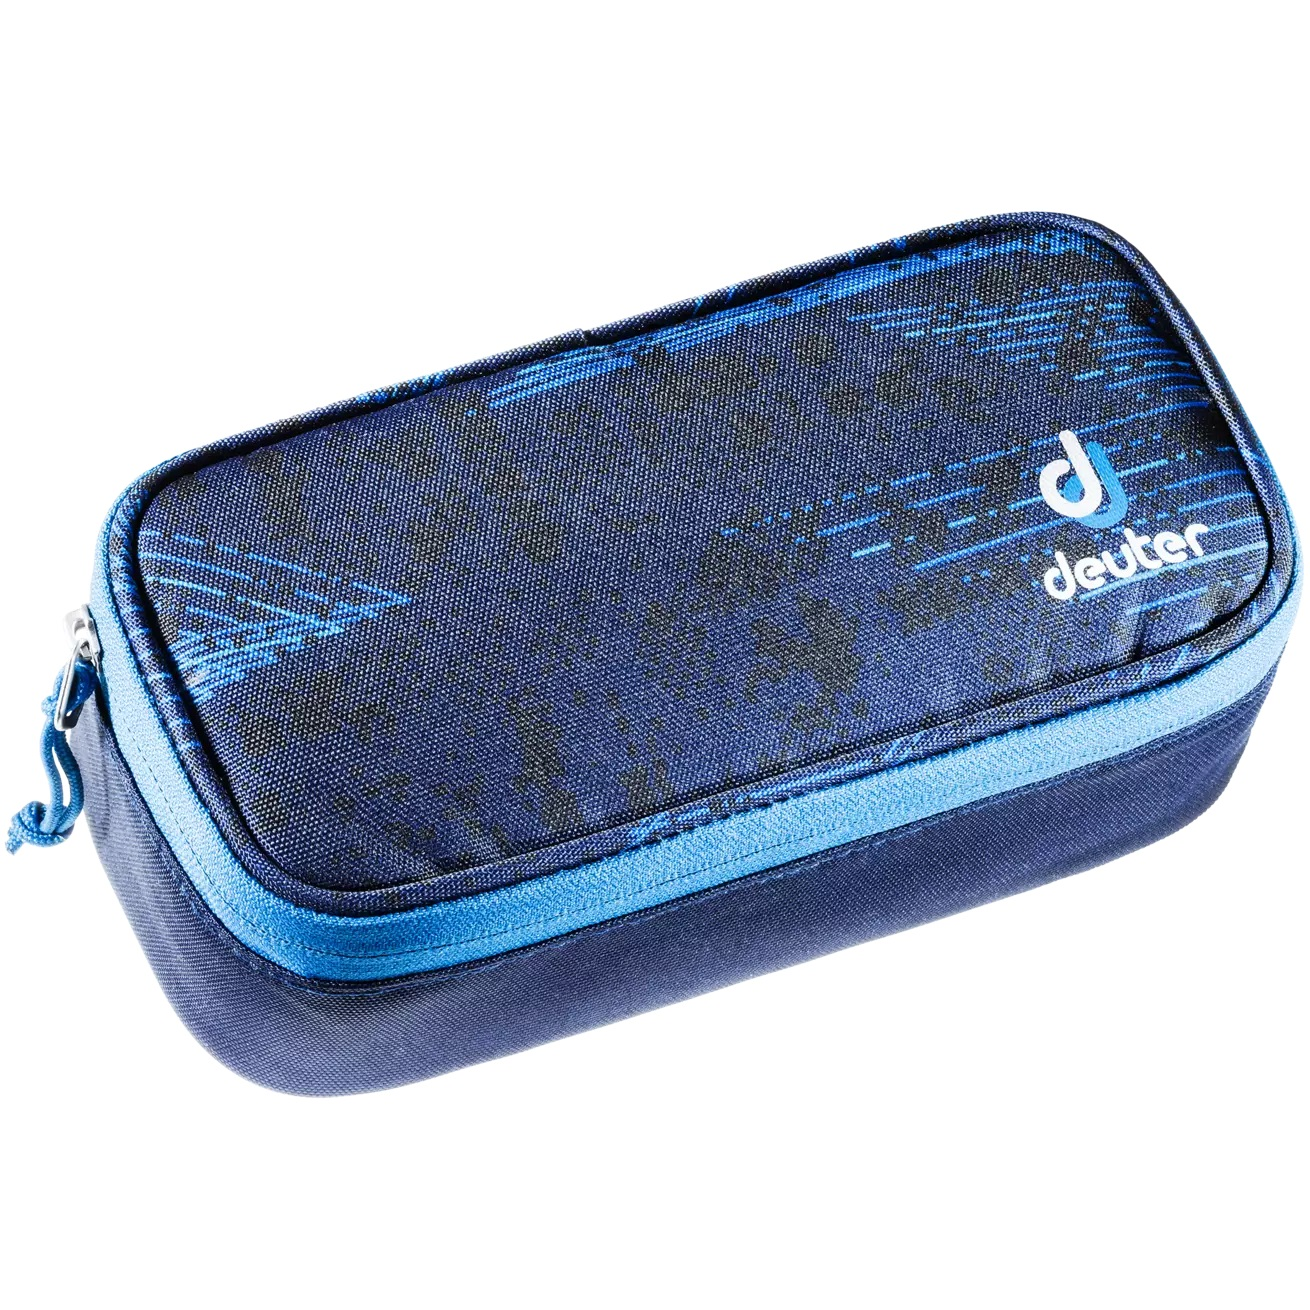 Deuter 'Pencil Case' navy laser